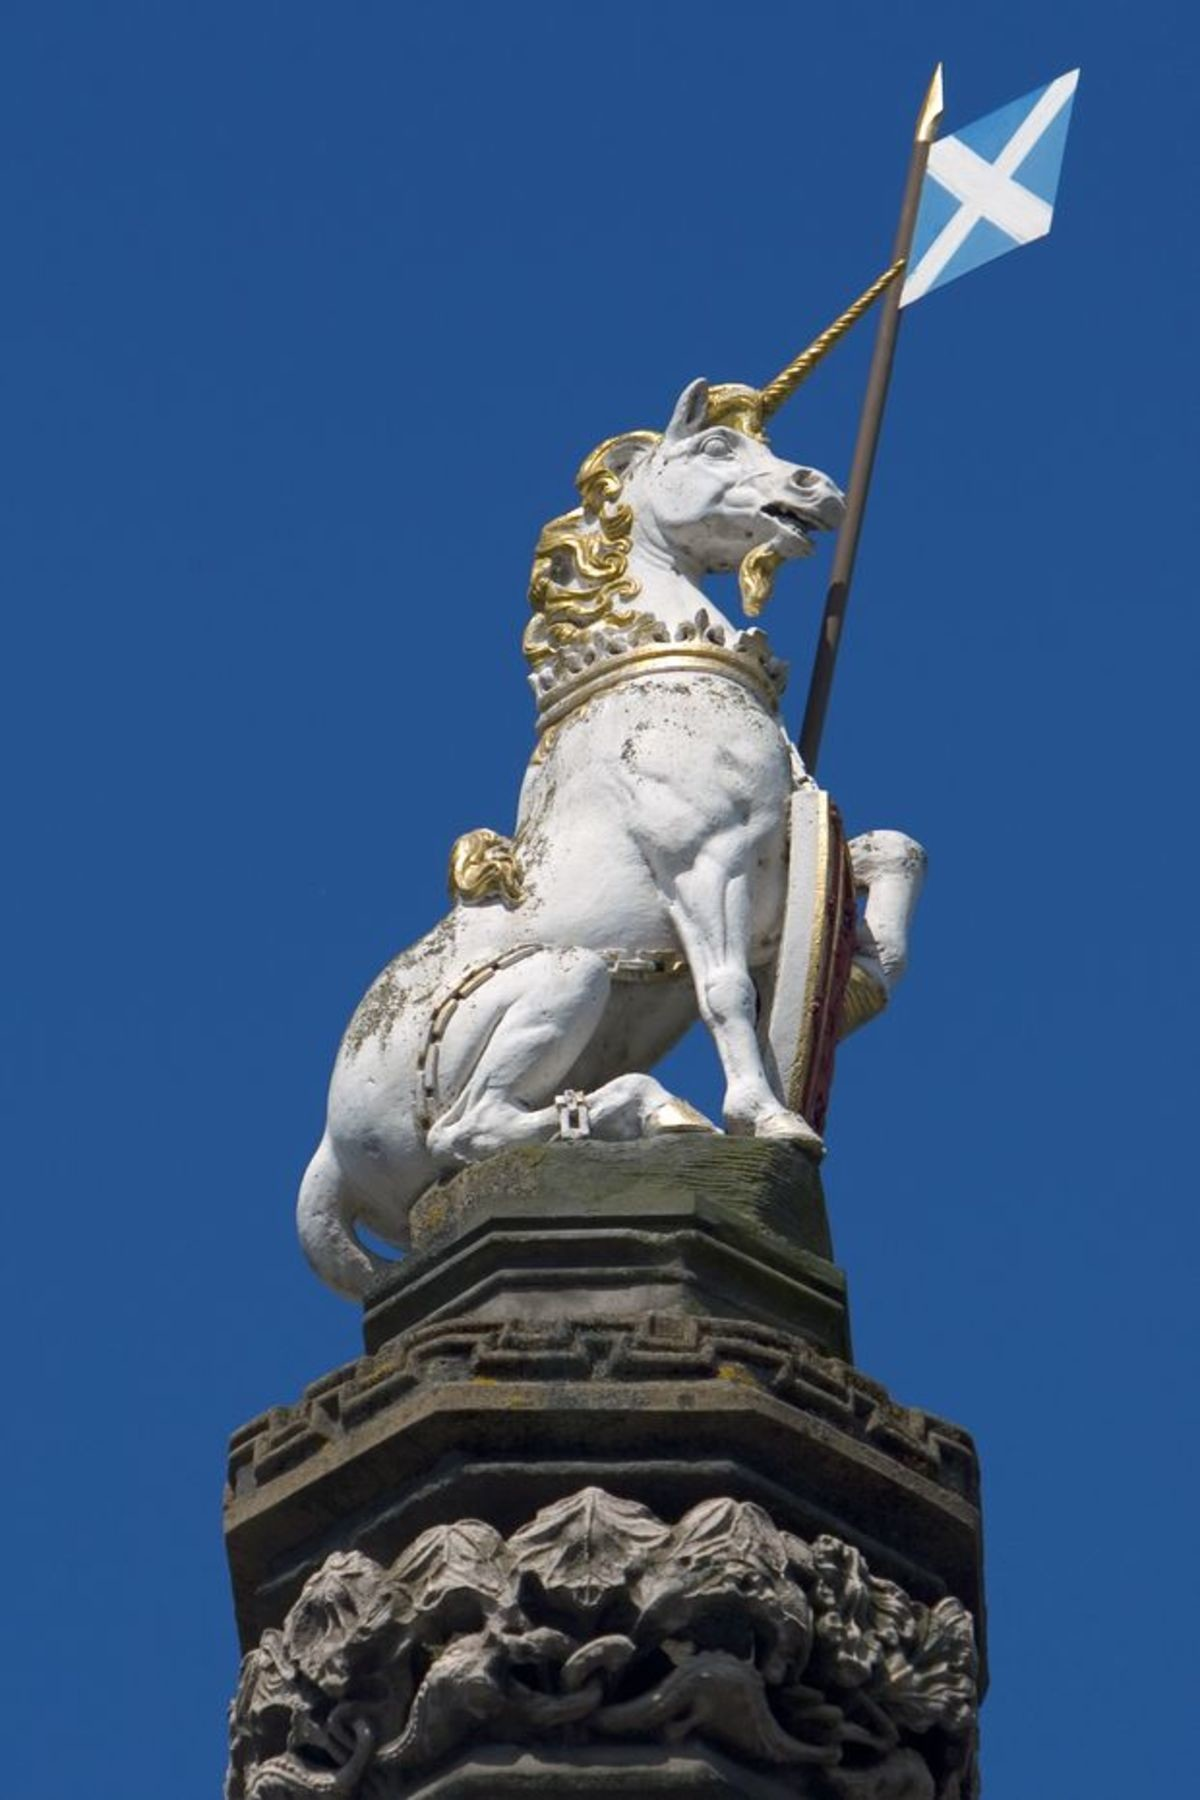 TIL Scottish National Animal is a Unicorn. .. An animal that doesn't exist for a country that doesn't exist